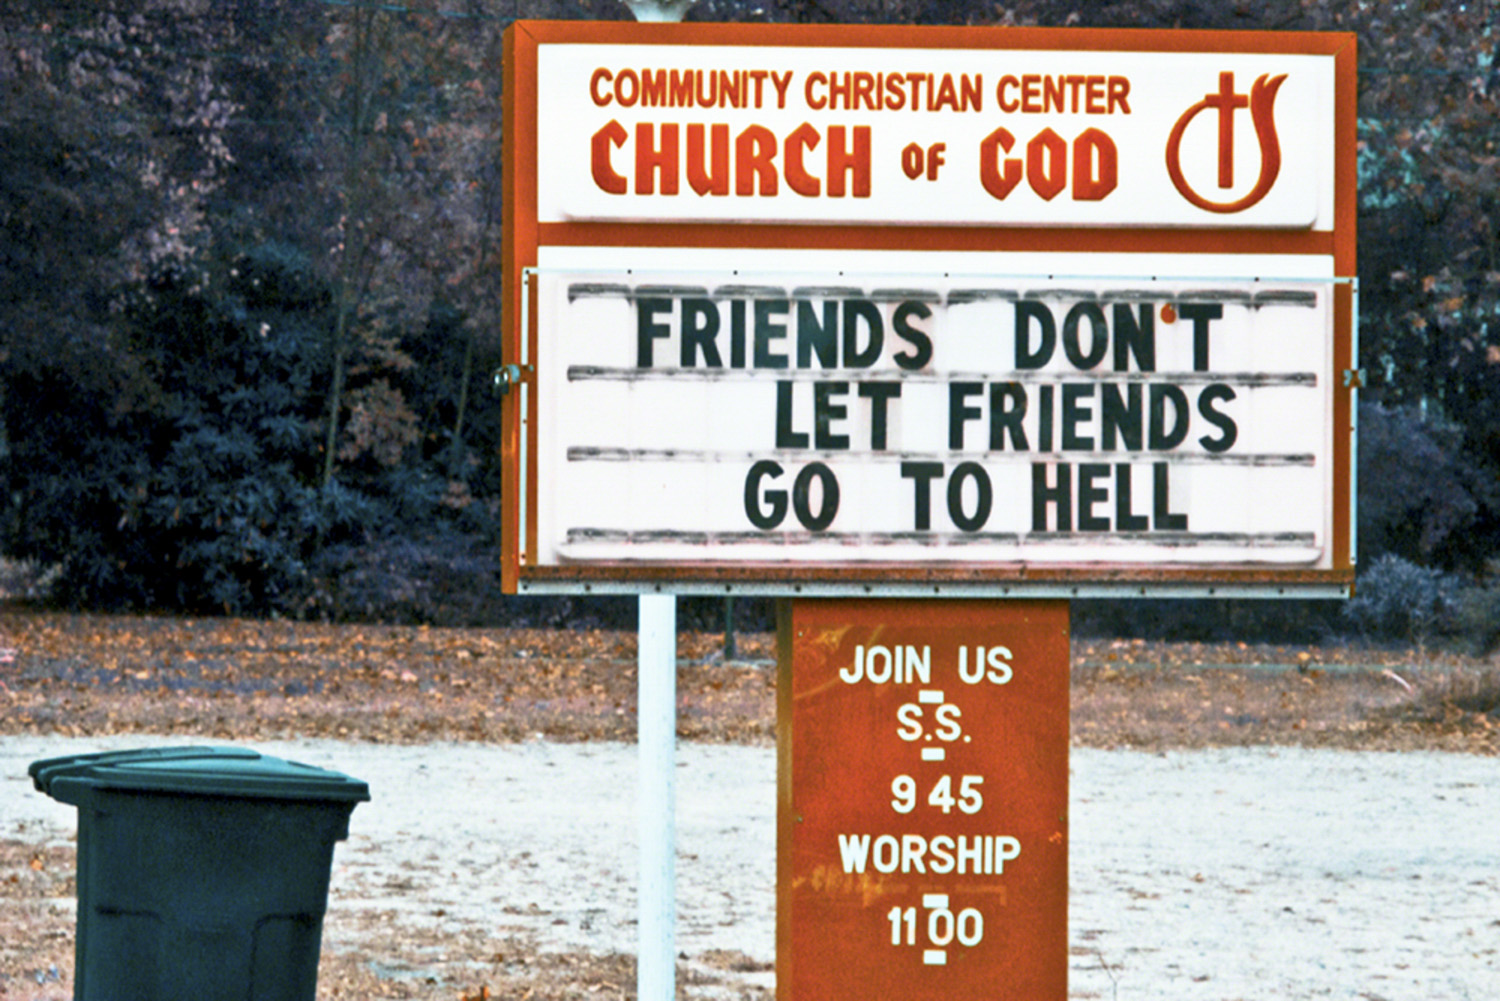 friends don't let friends go to hell